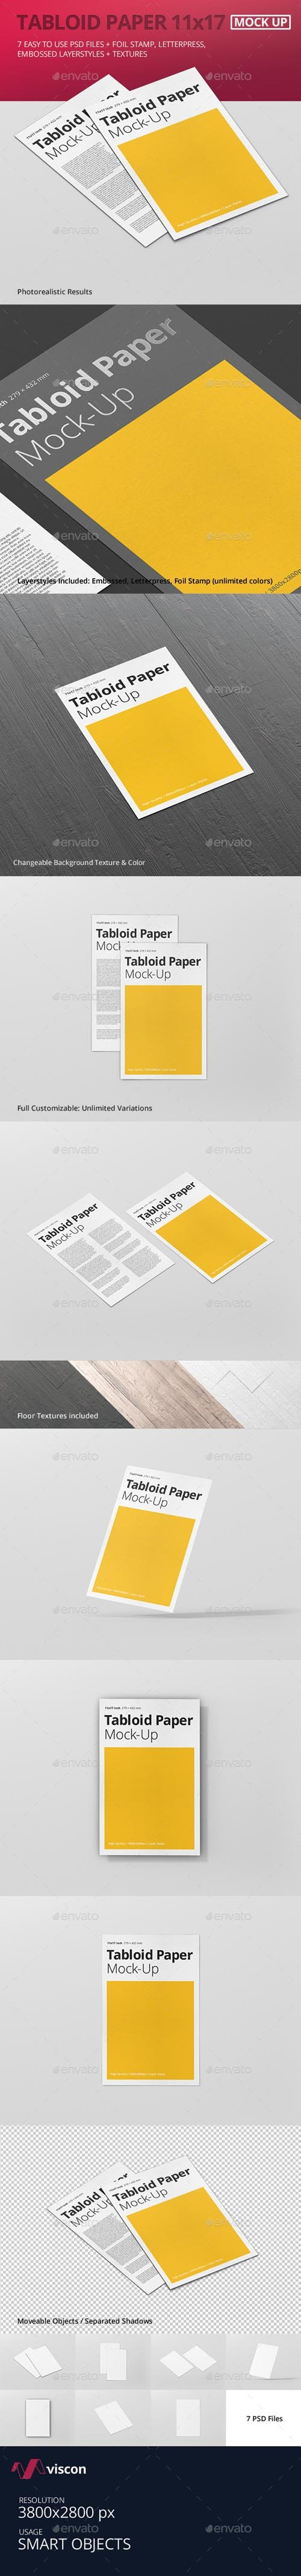 Tabloid Paper Mock-Up - 11x17 17561027